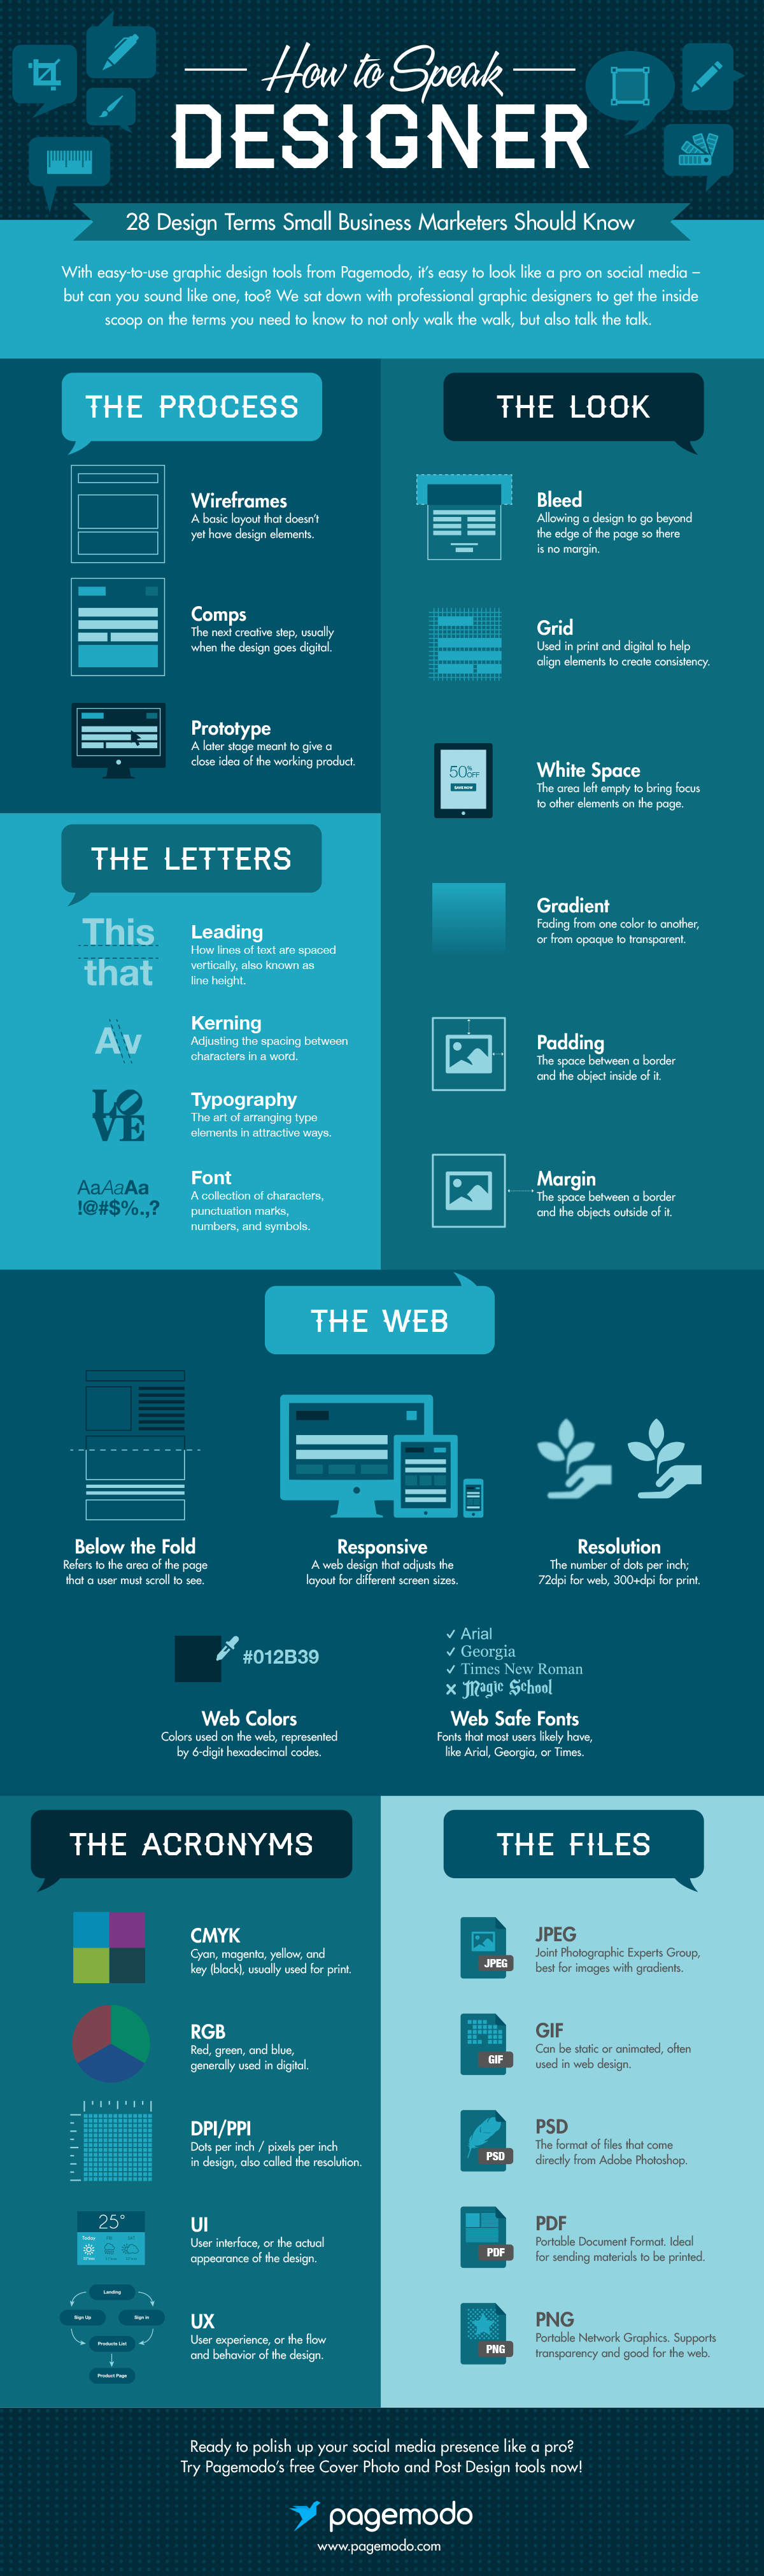 PageModo-How-to-Speak-Designer-Infographic.png